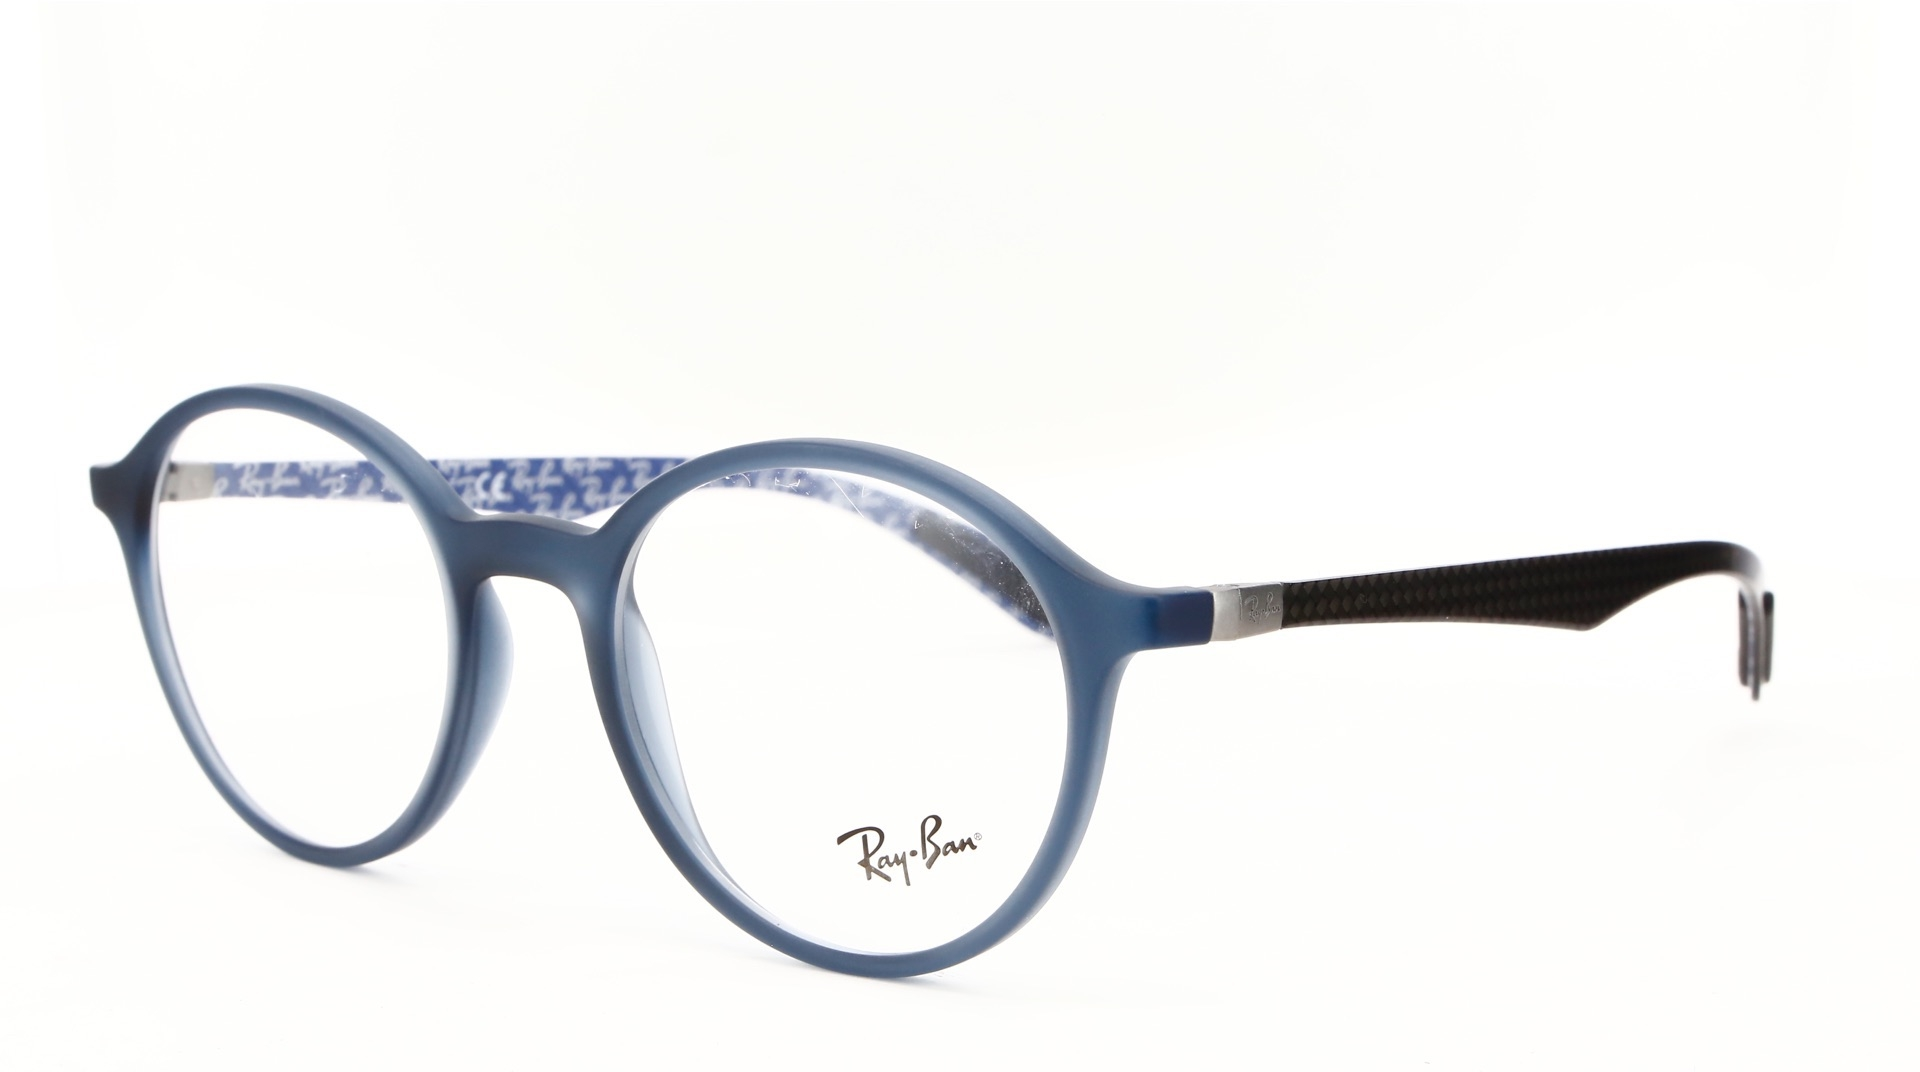 Ray-Ban - ref: 78771